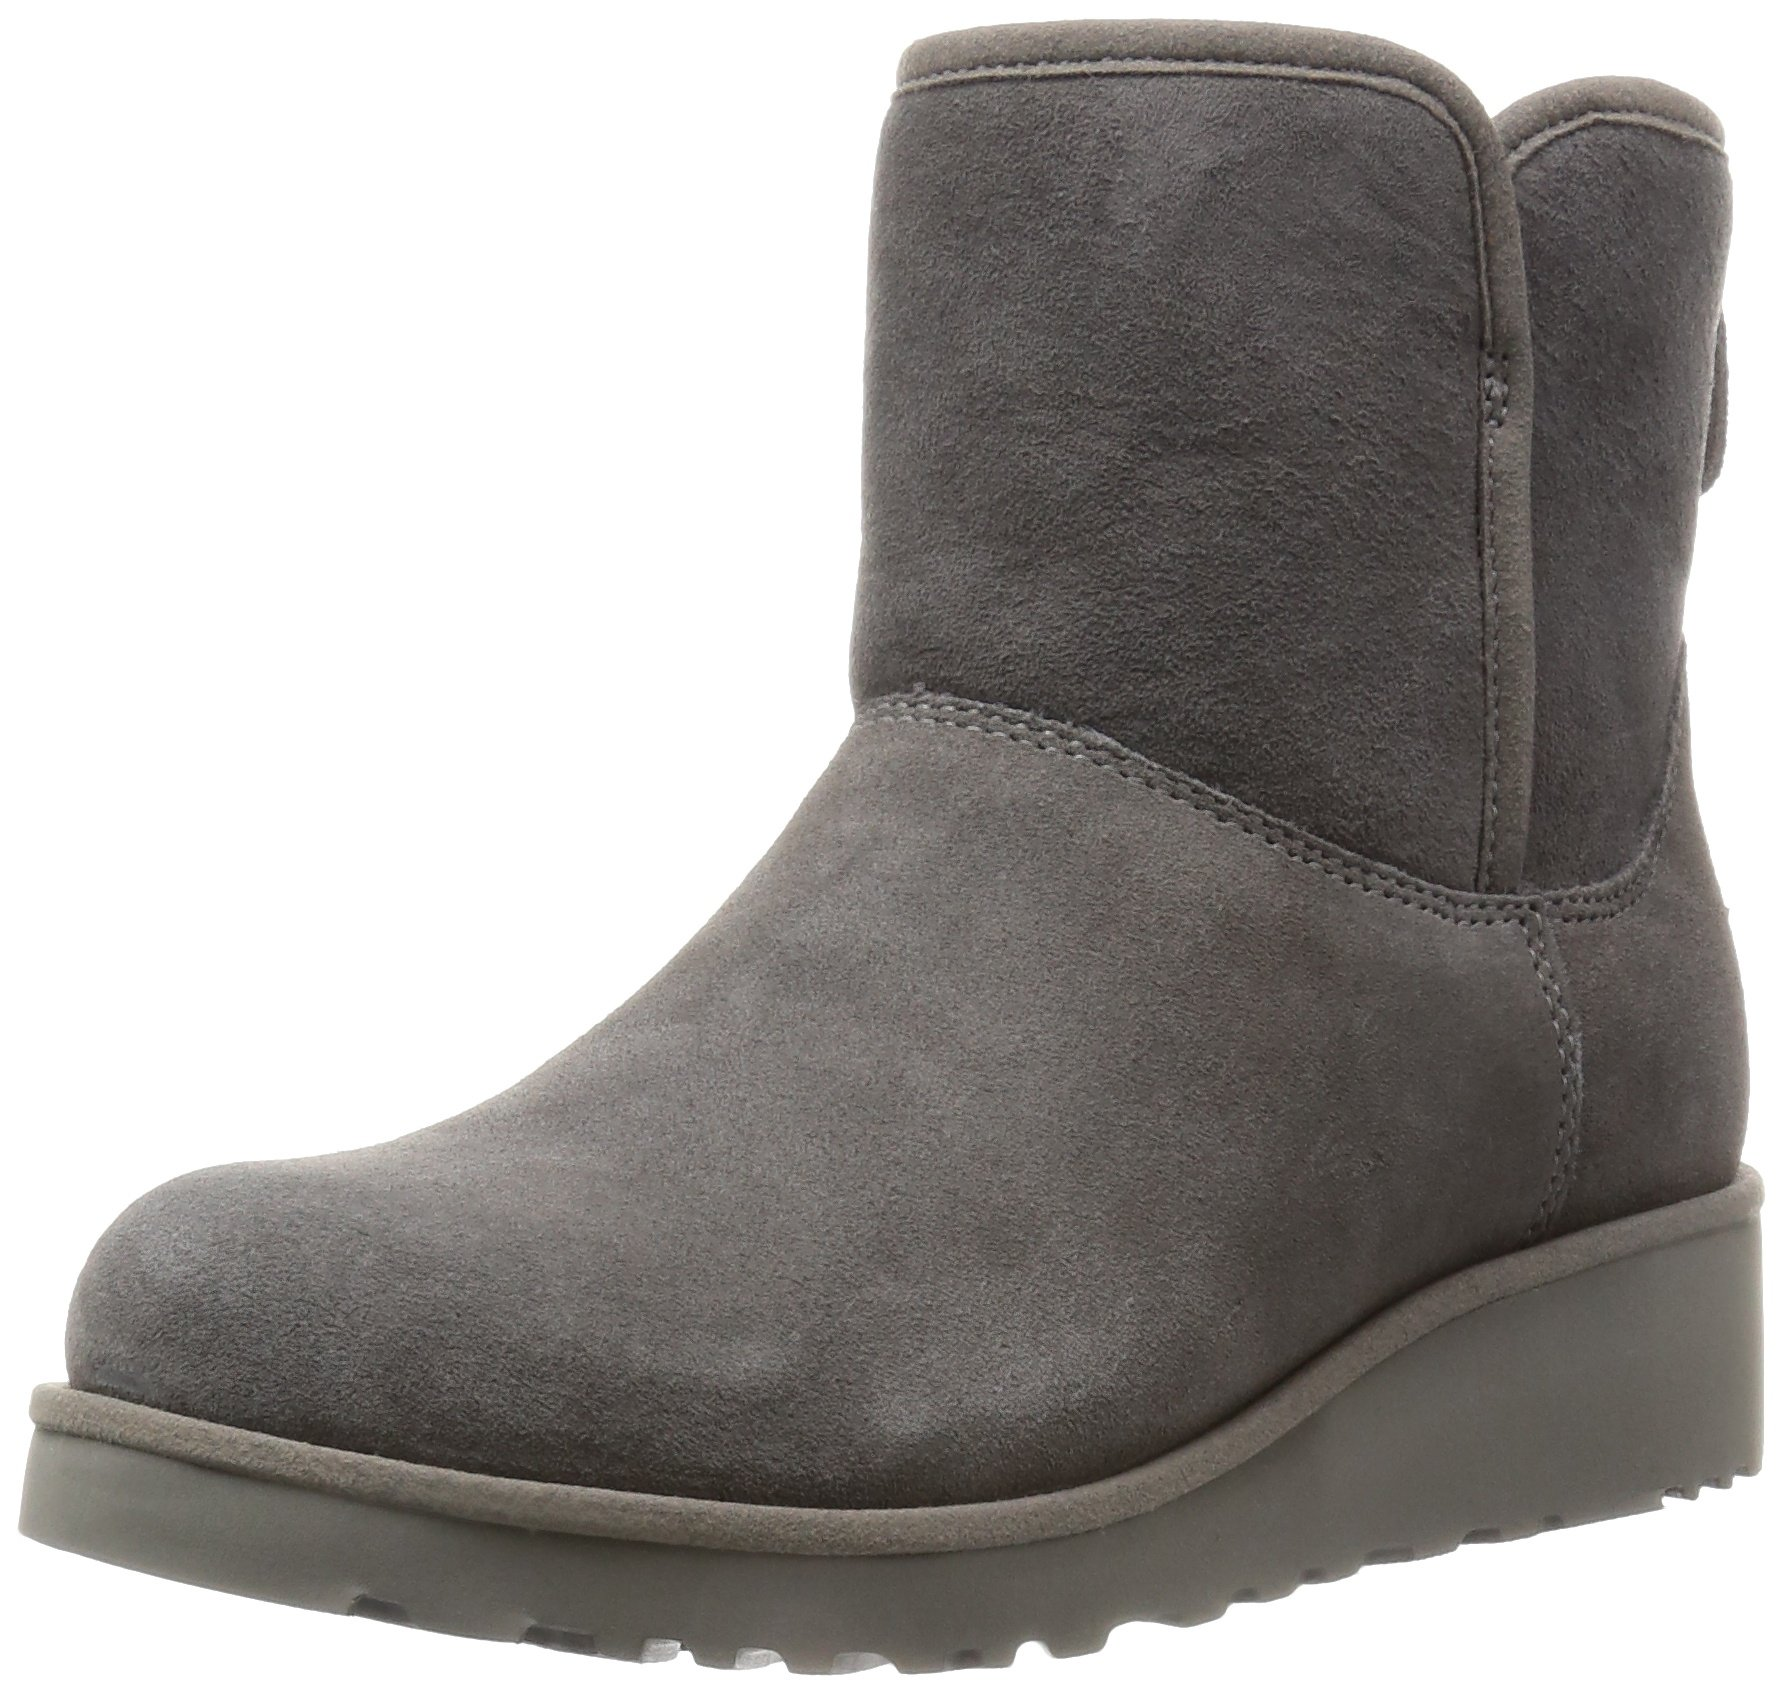 UGG Women's Kristin Winter Boot, Grey, 12 B US